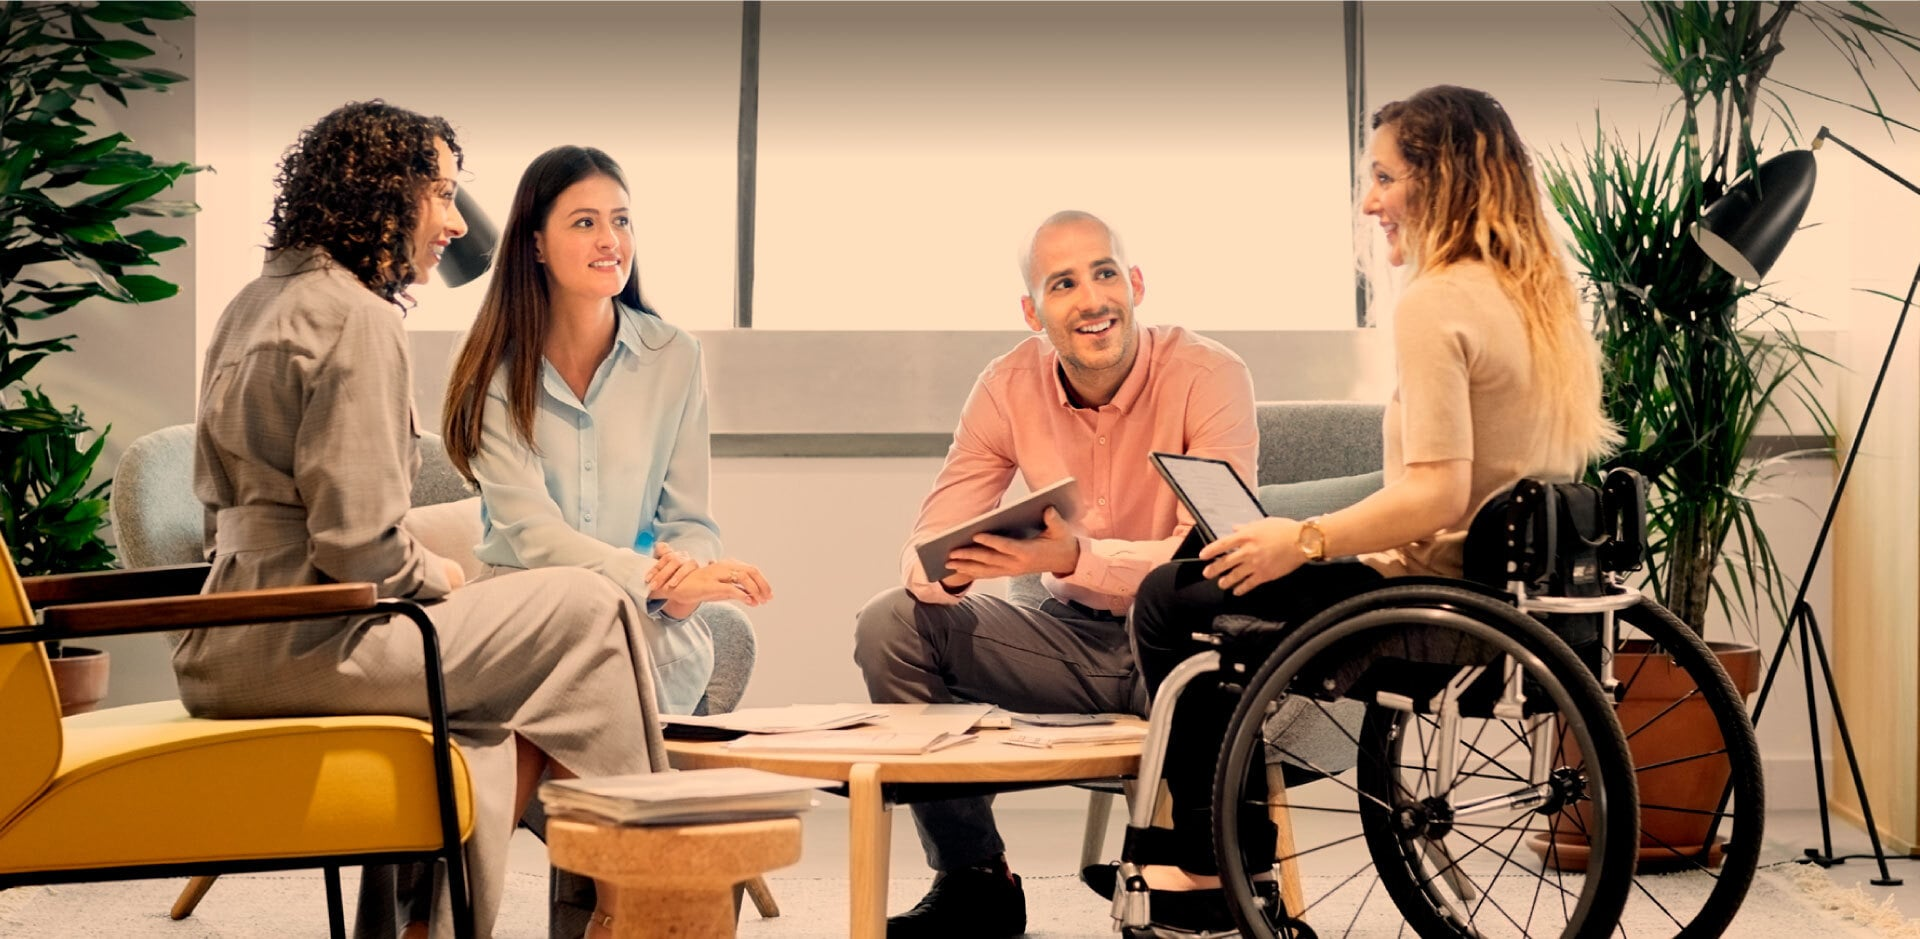 508 compliance, eLearning accessibility, content accessibility